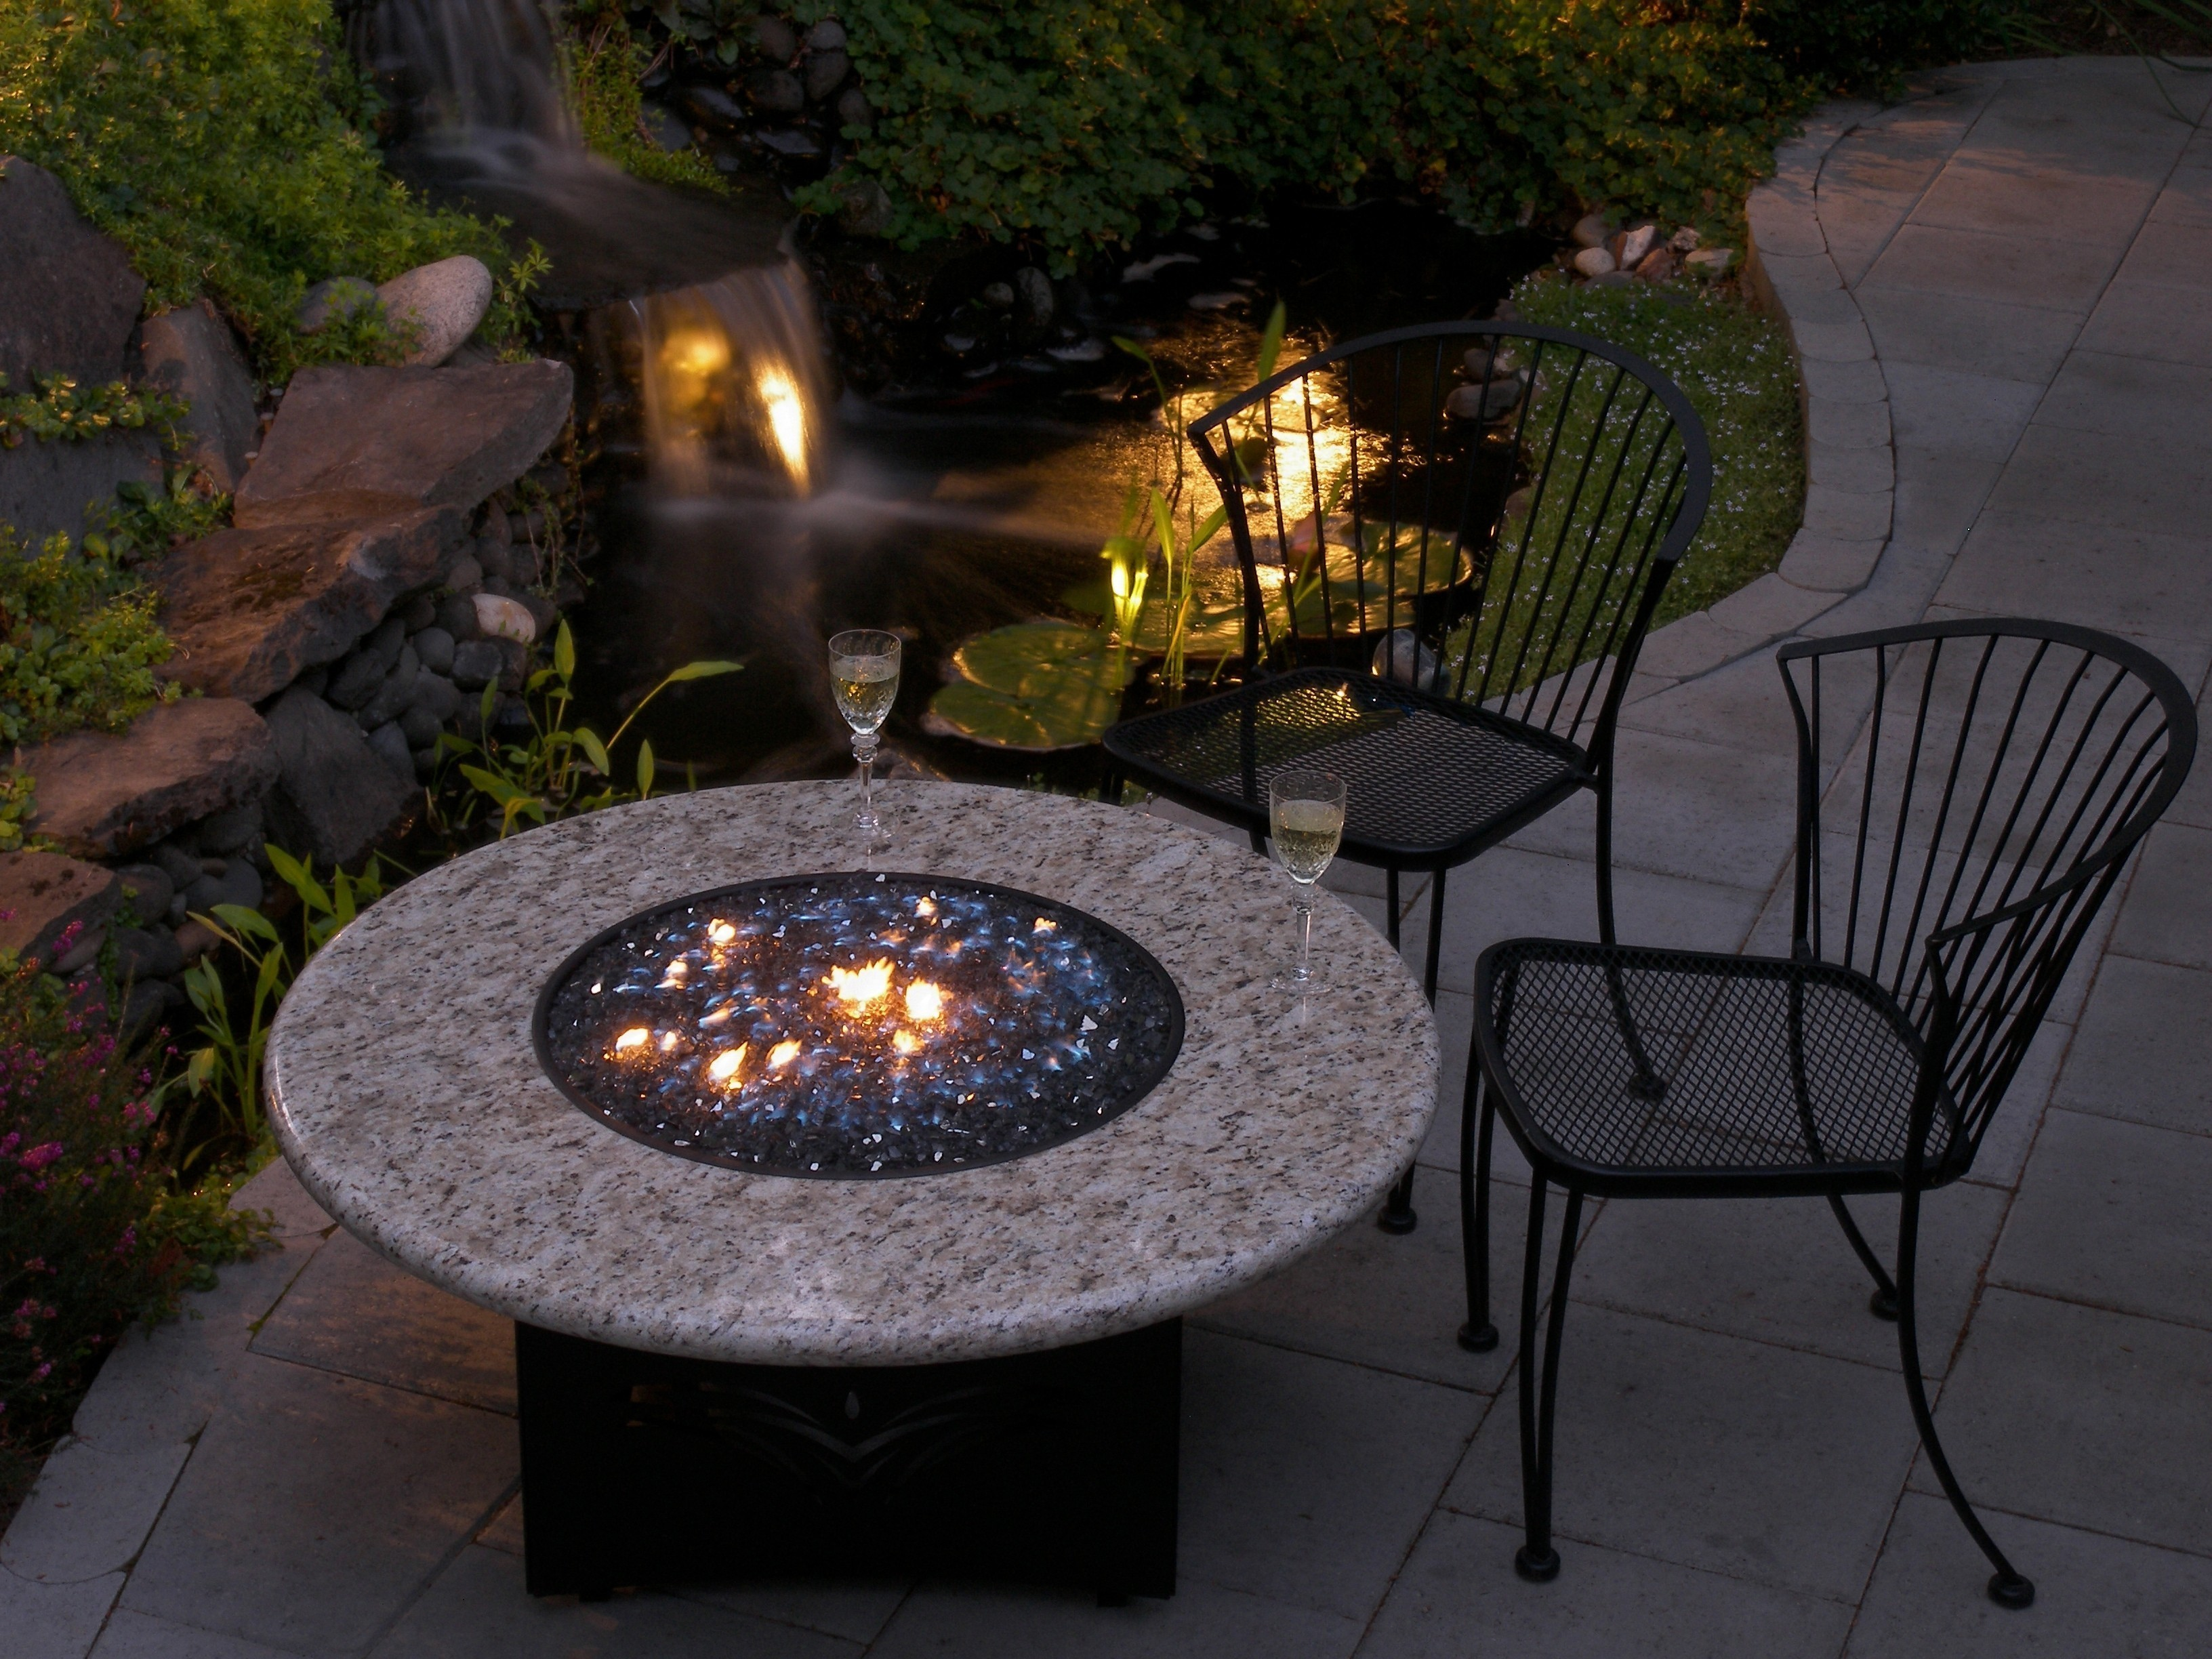 Oriflamme Fire Table at Dusk